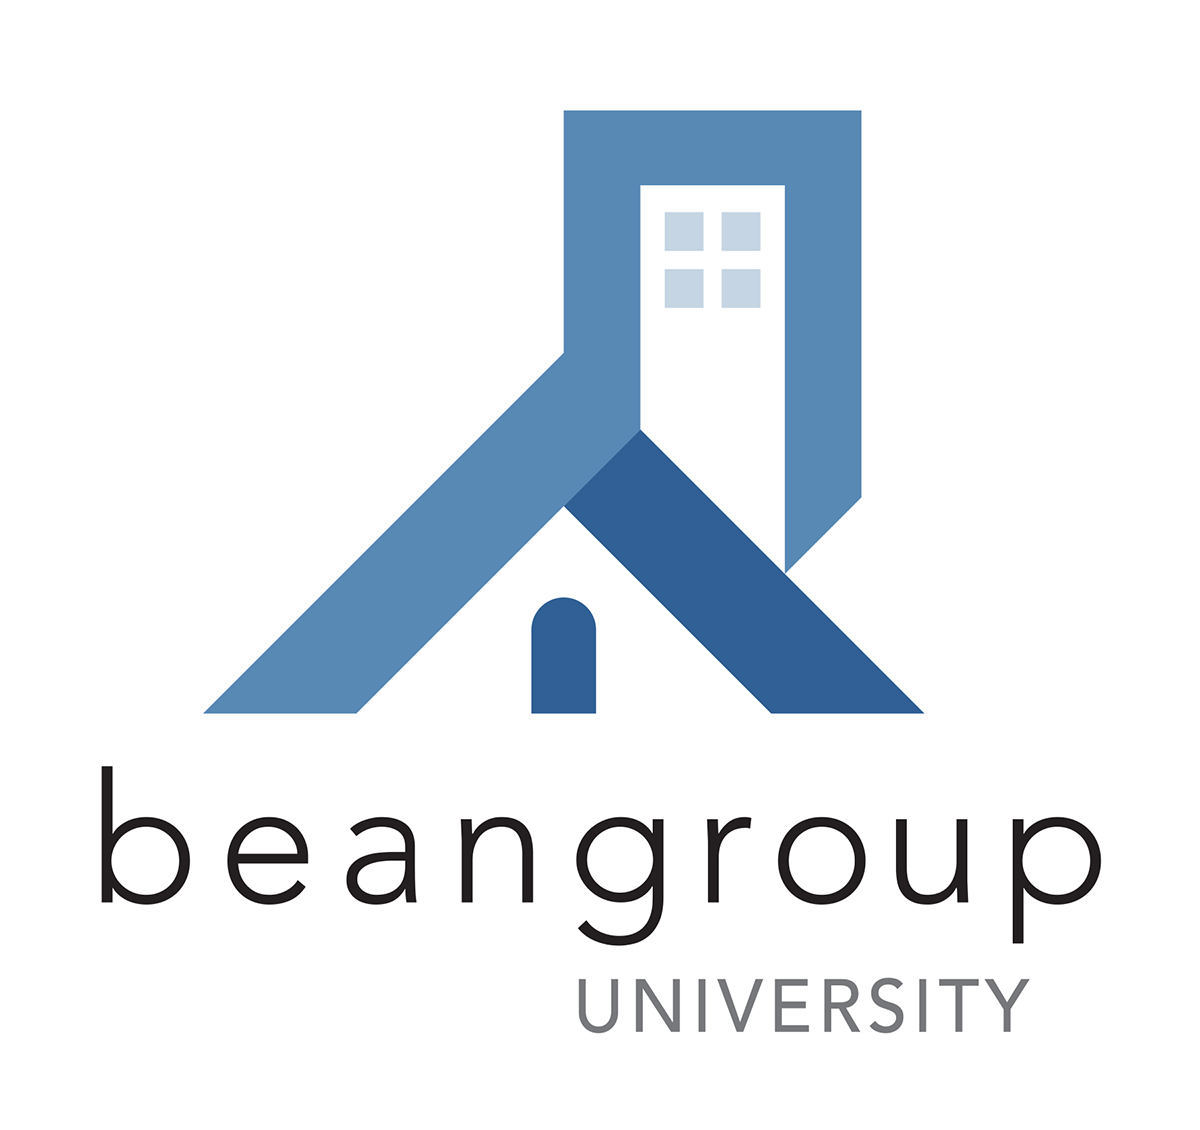 Bean Group University